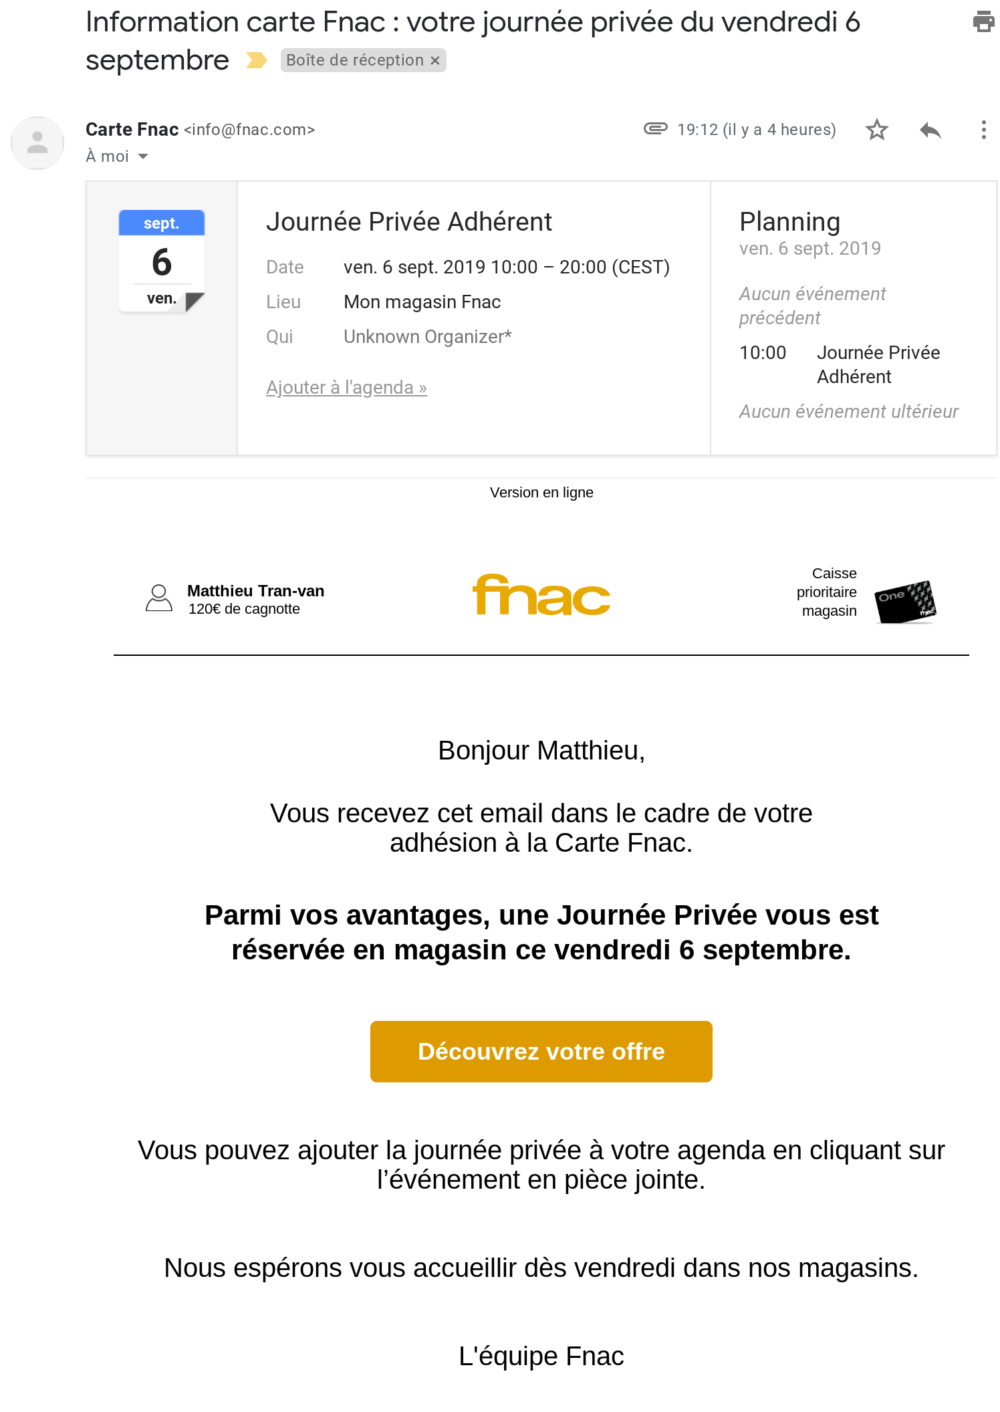 E-mail drive to store Fnac